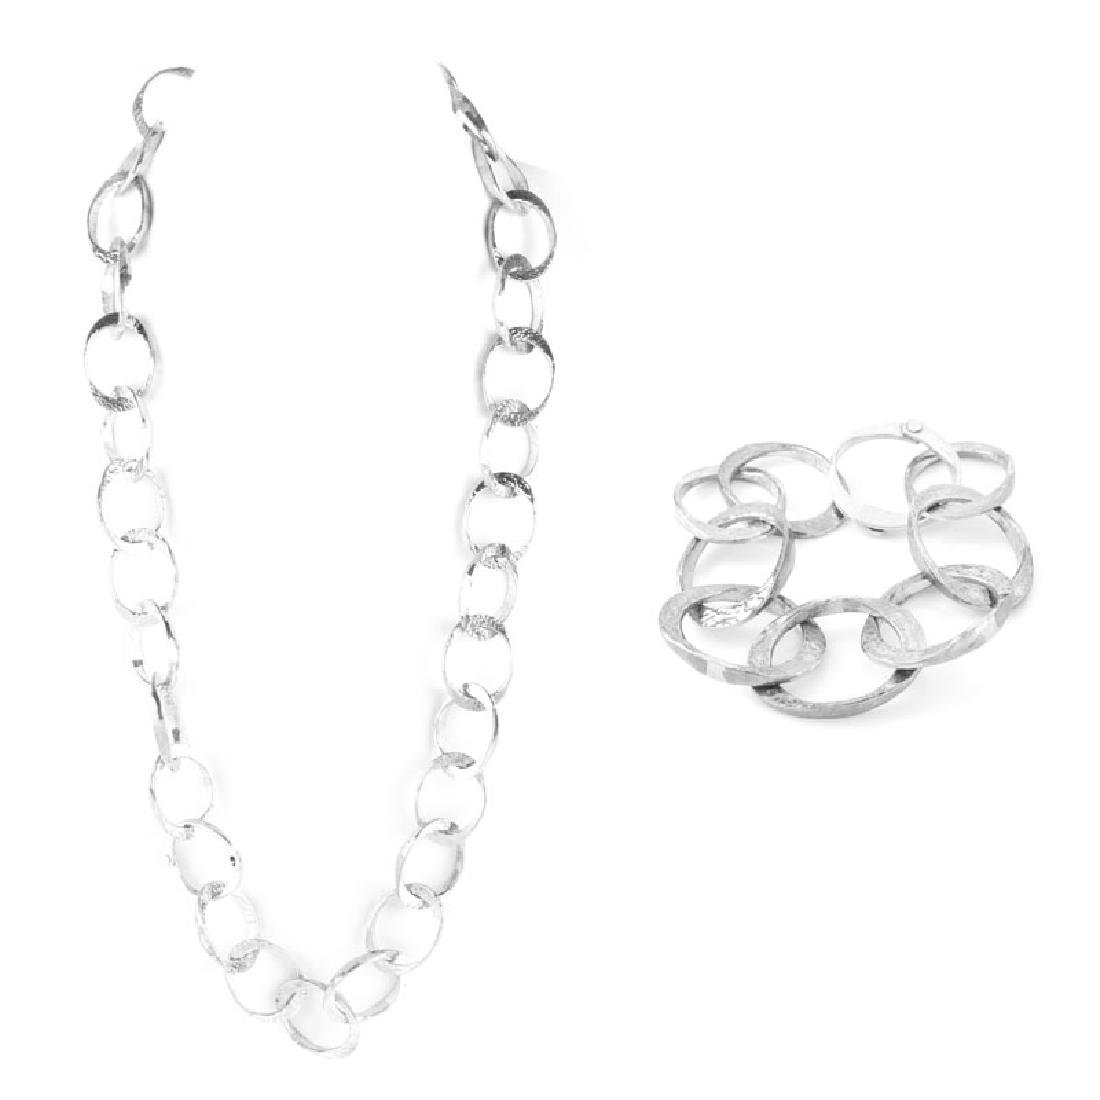 Retro Sterling Silver Necklace and Bracelet Suite.